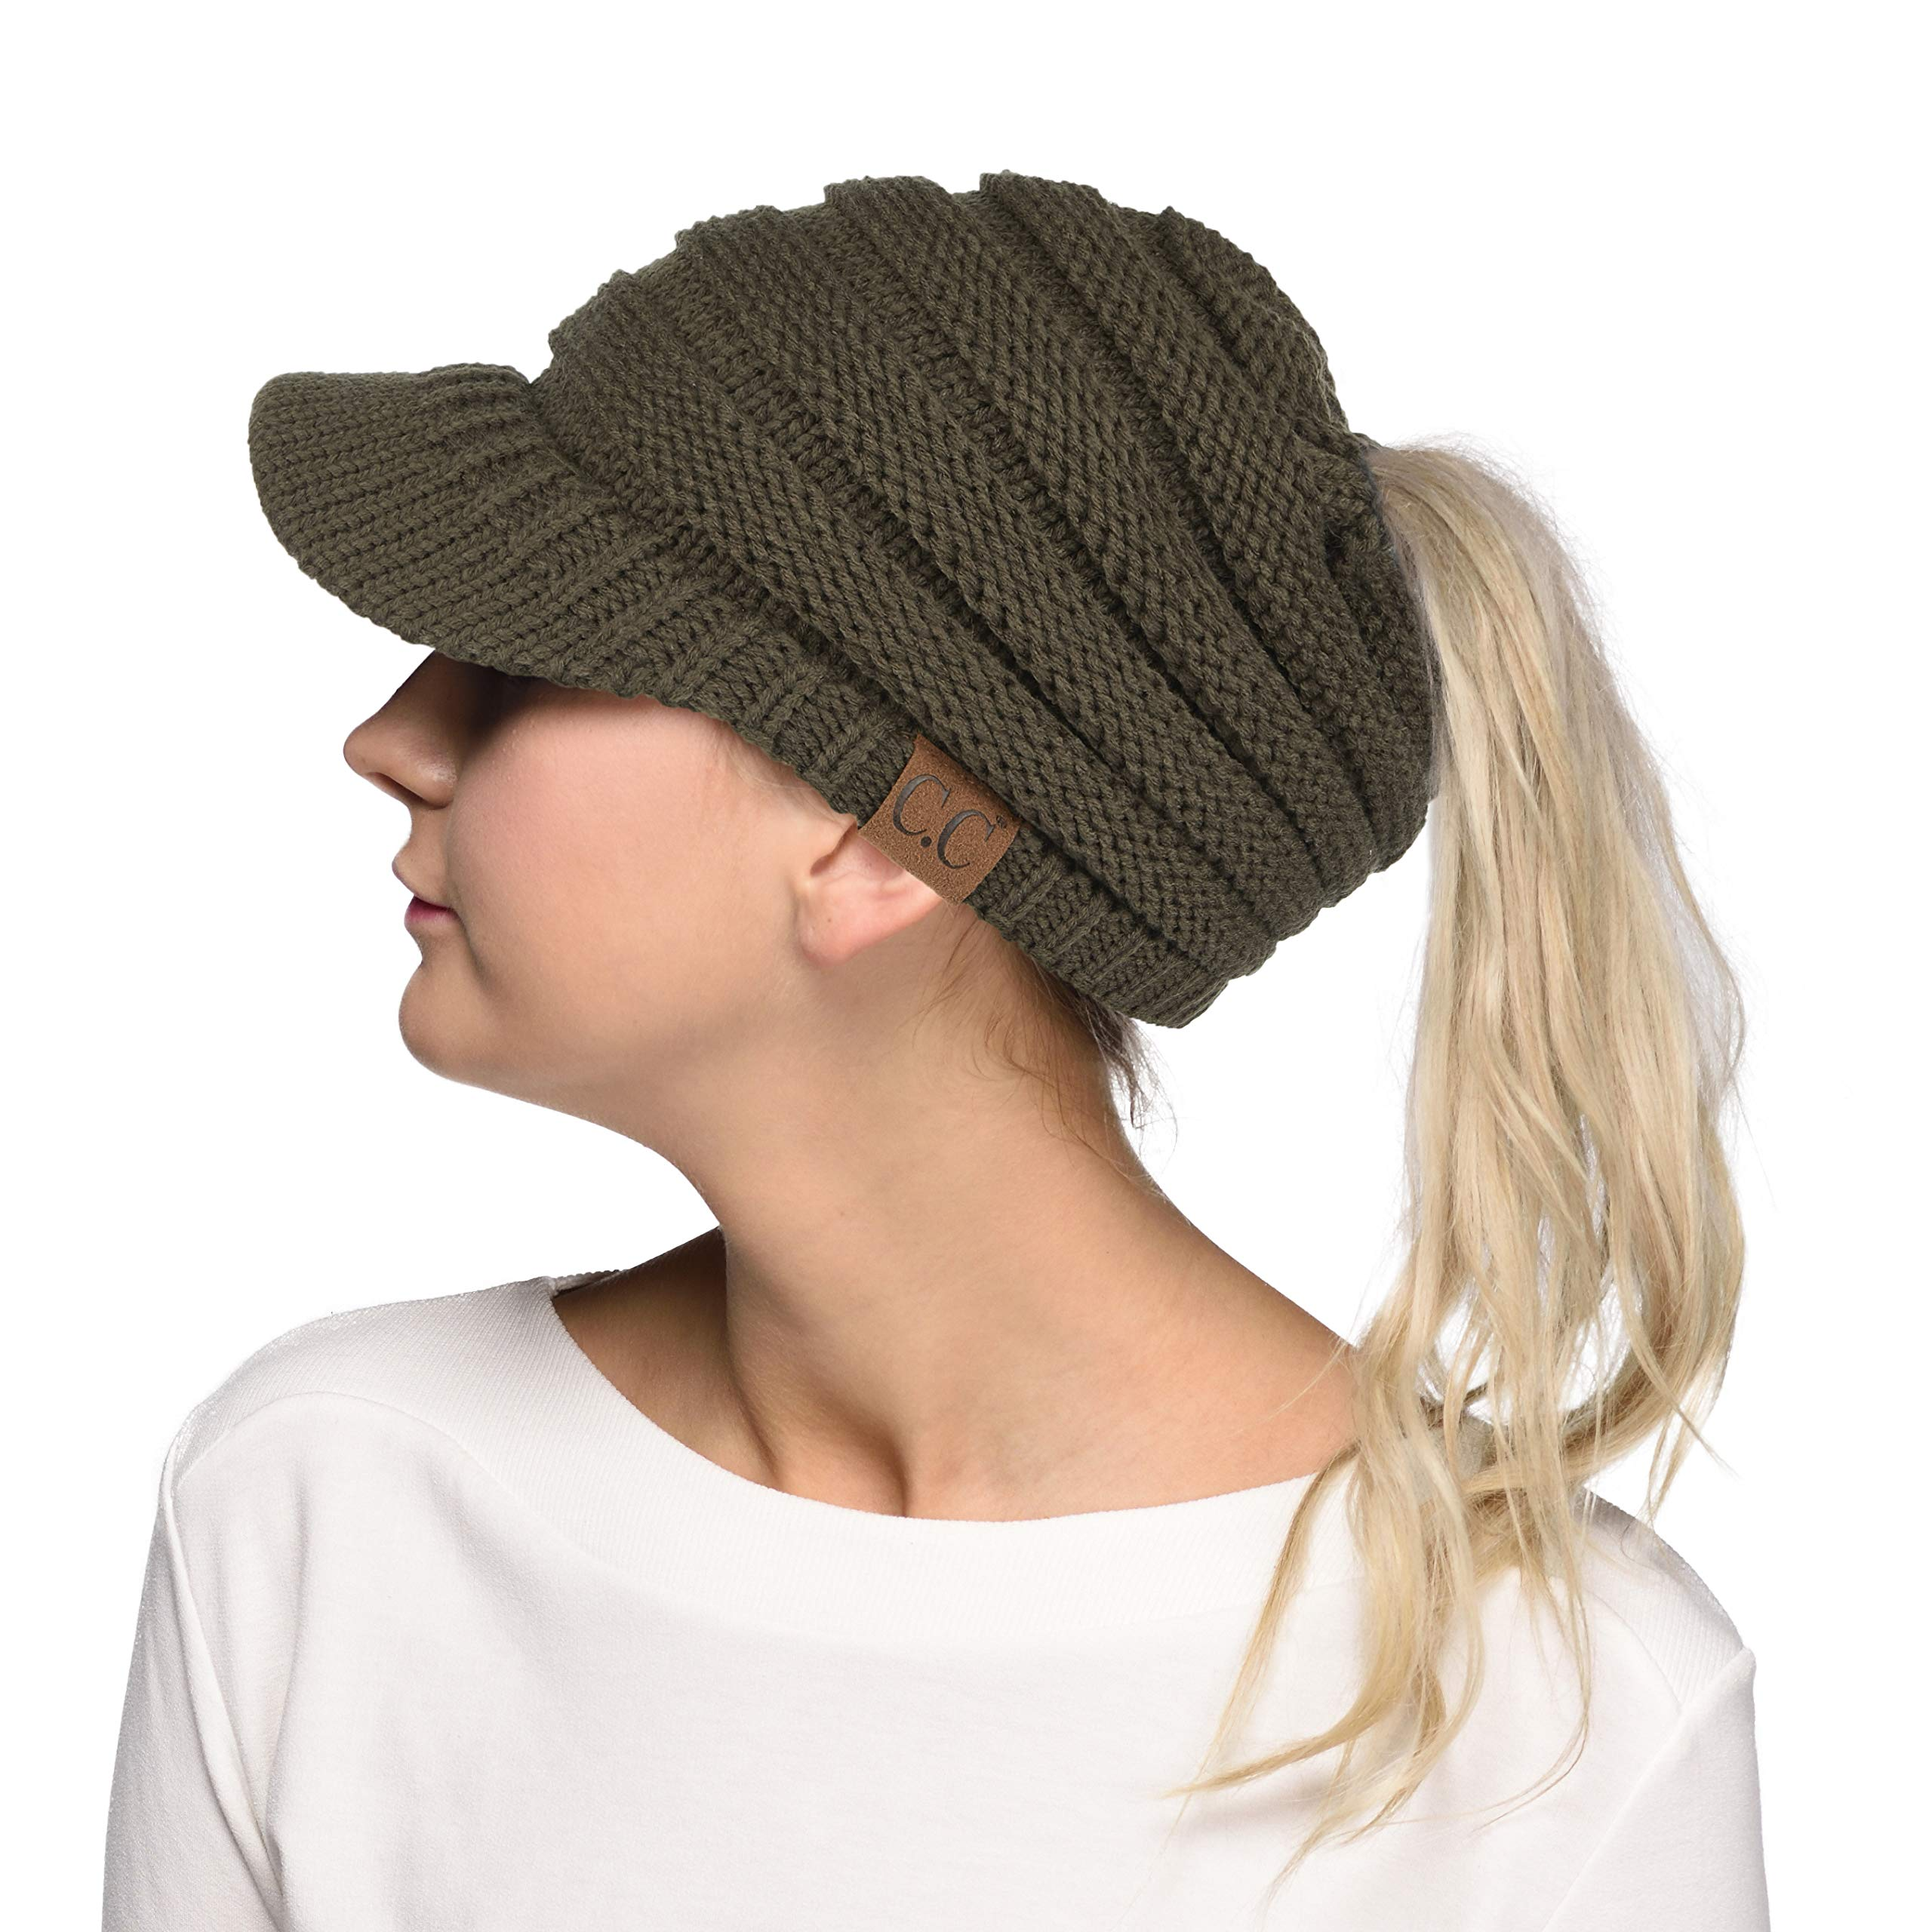 Hatsandscarf C.C Exclusives Messy Bun Ponytail Visor Brim Beanie Hat ... 35cf99e488b